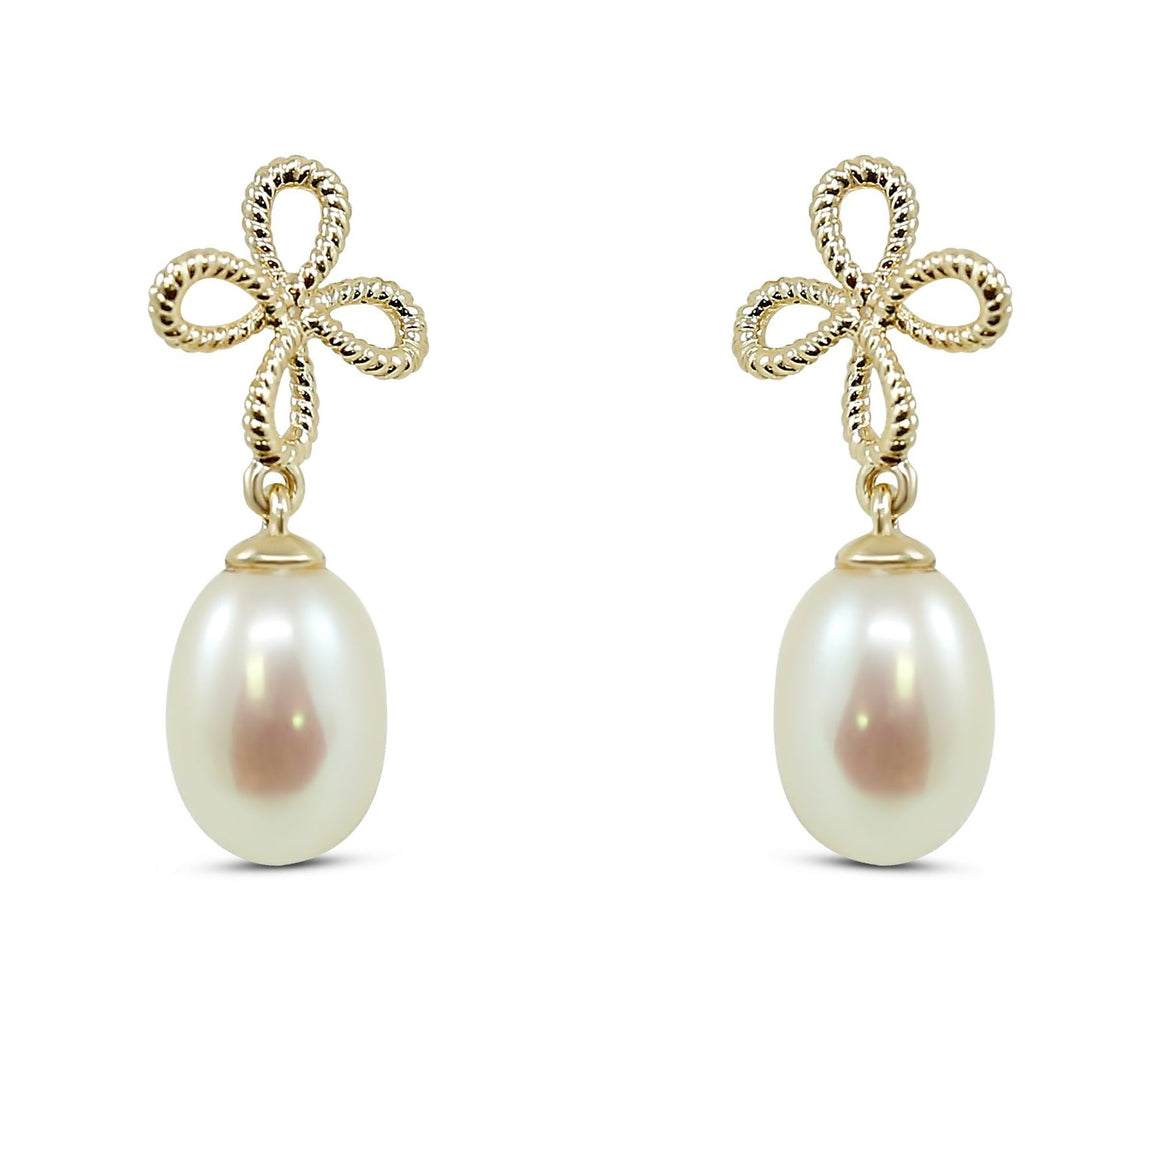 14k yellow gold freshwater pearl dangly earrings with fun bow design